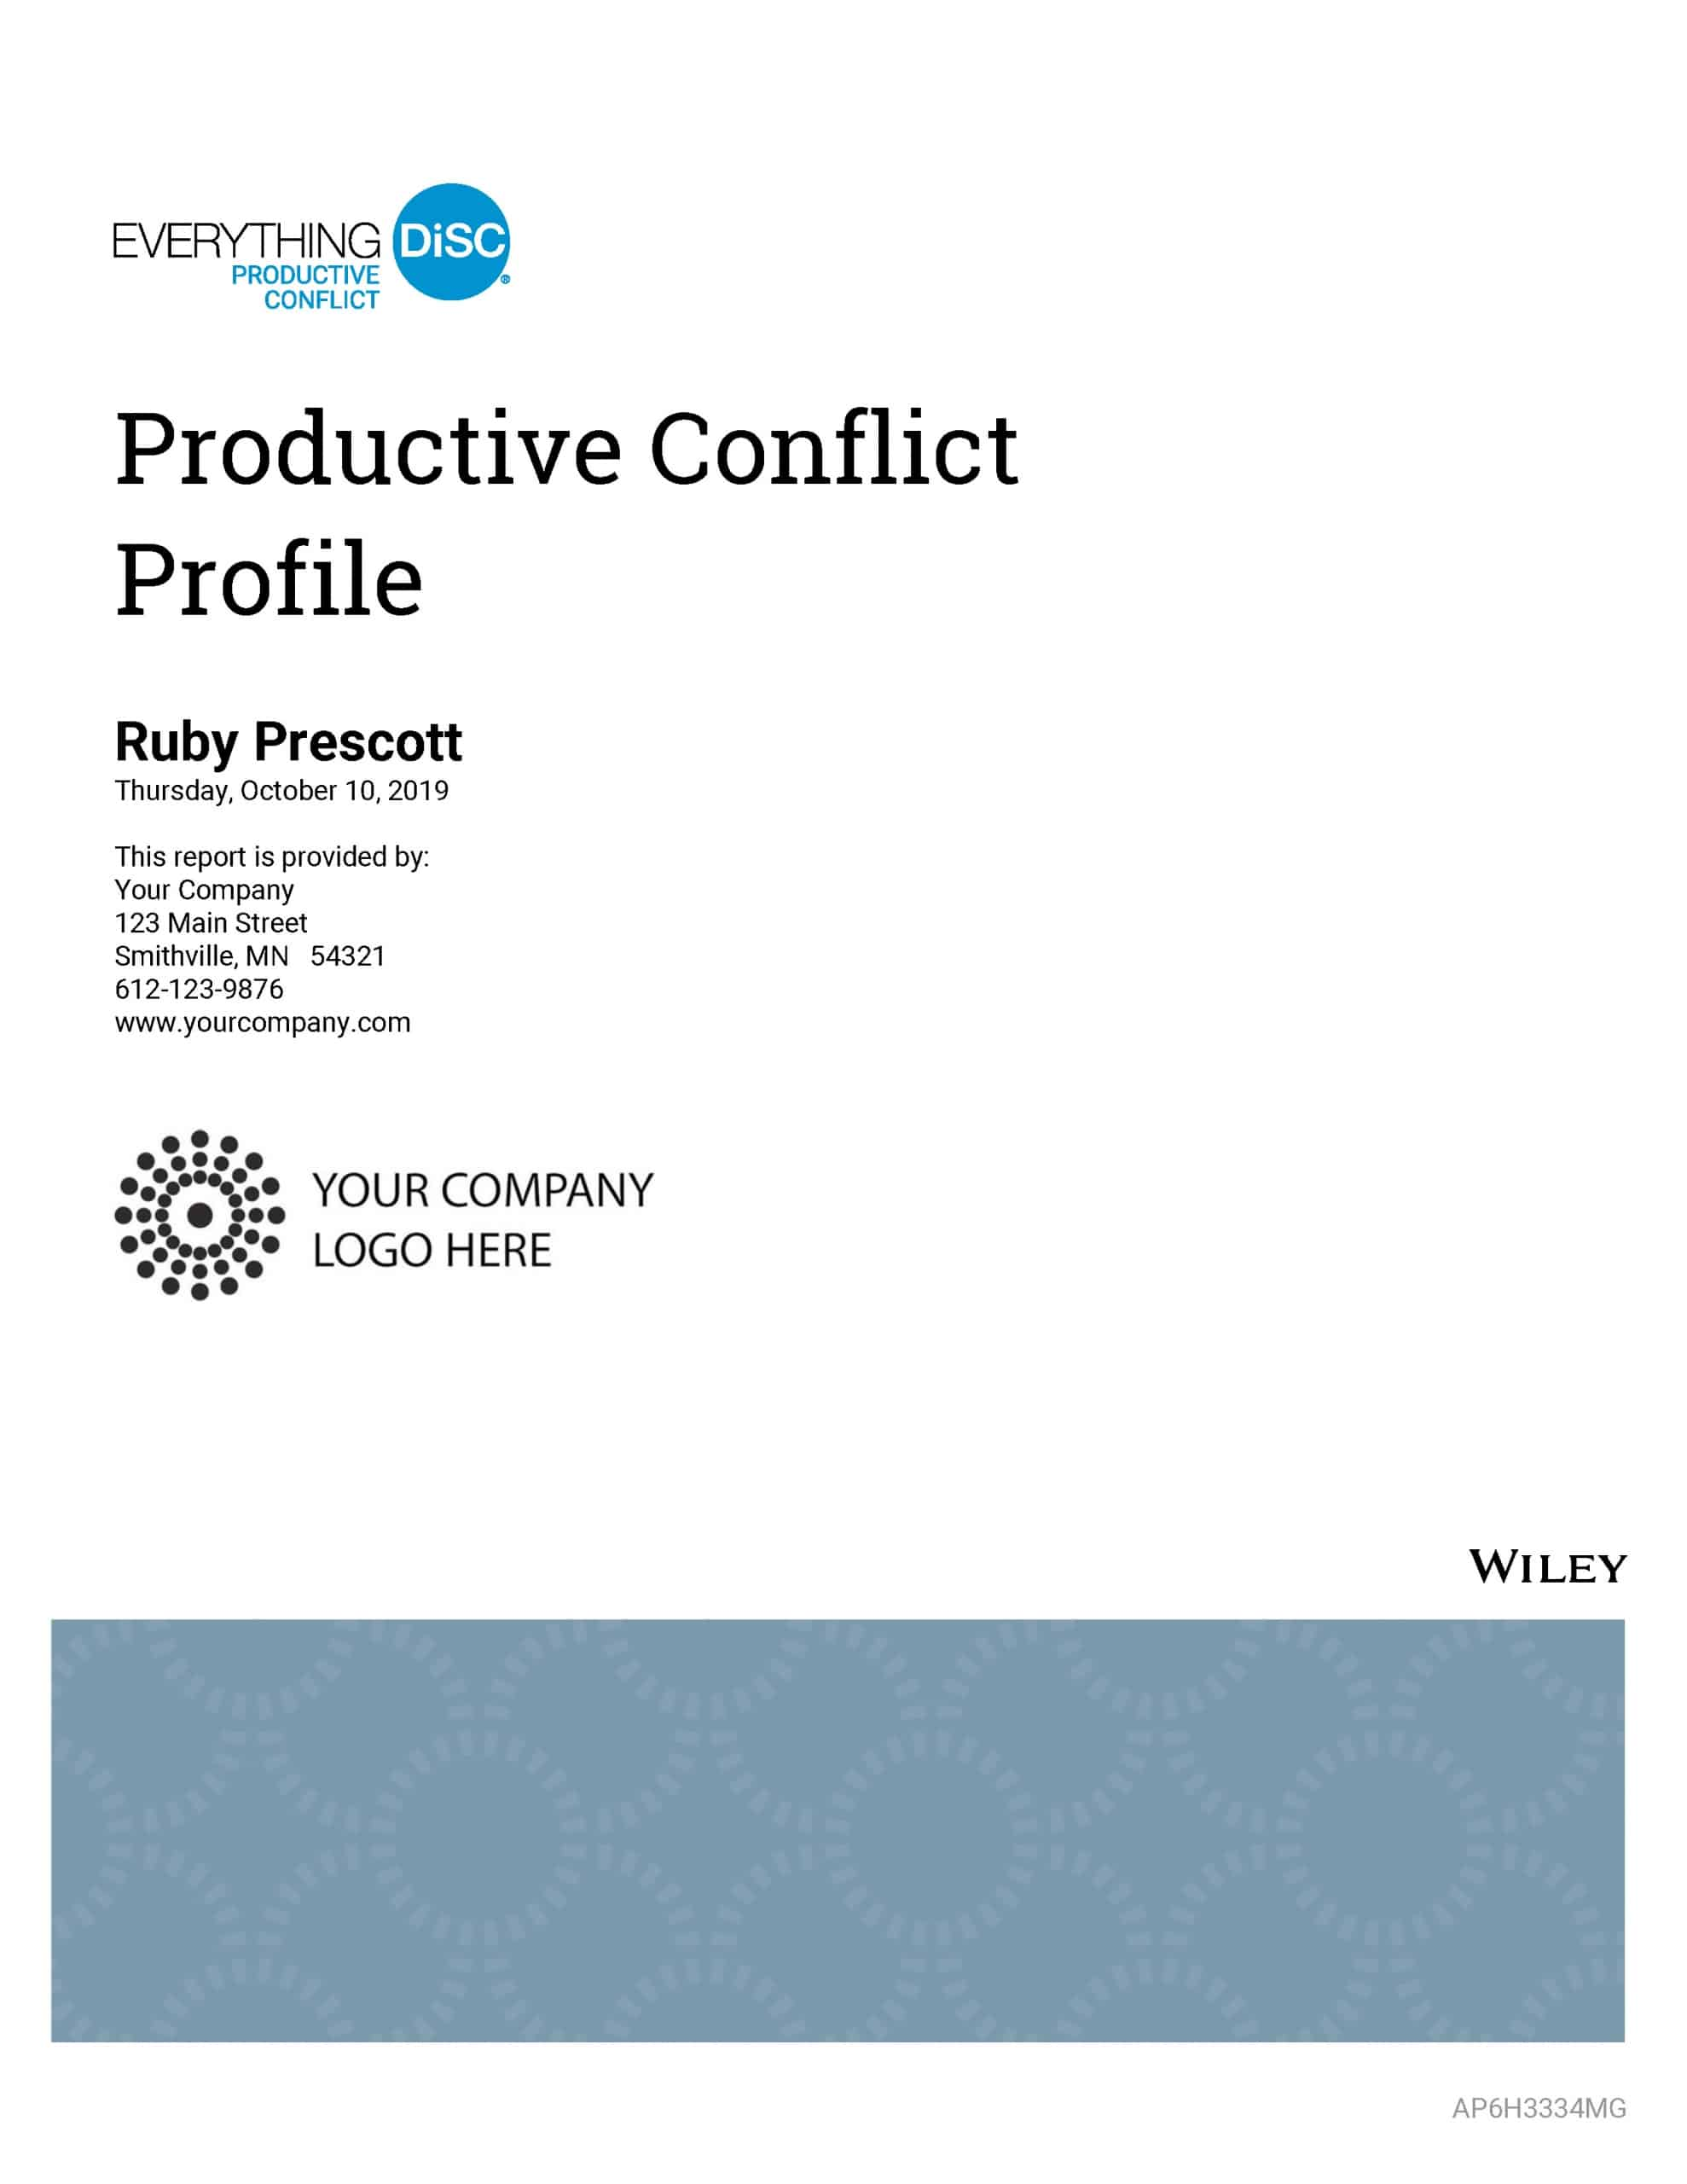 Productive Conflict Sample